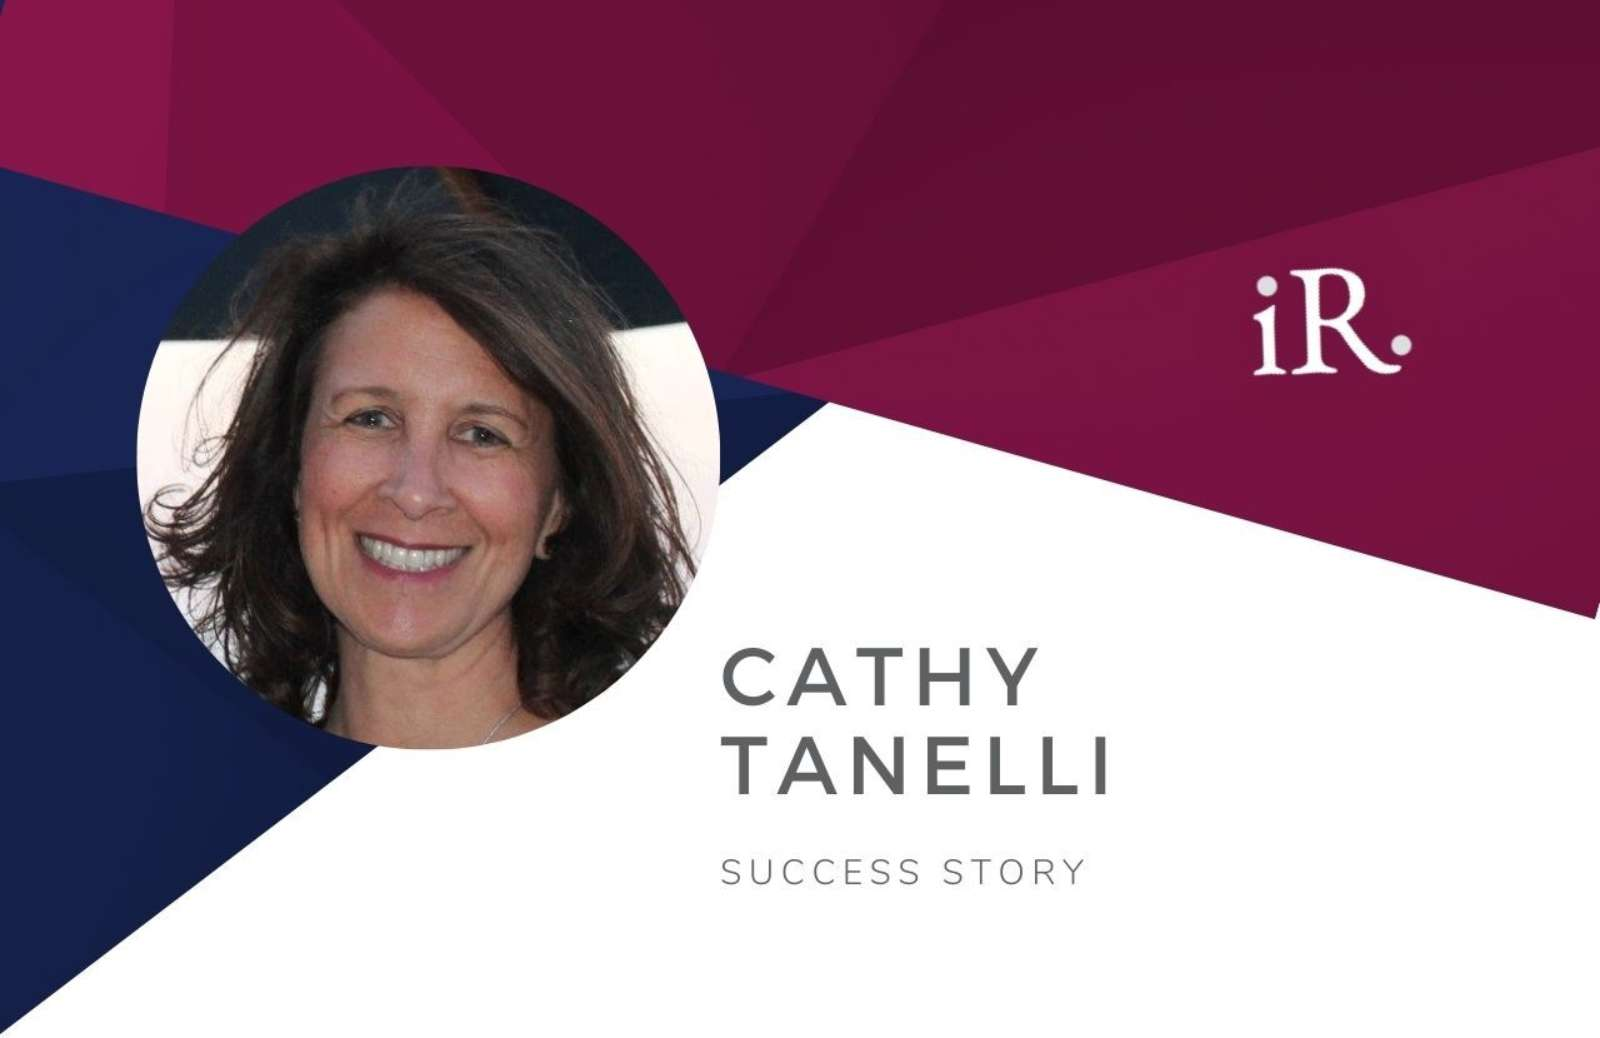 Cathy tanelli success story thumbnail